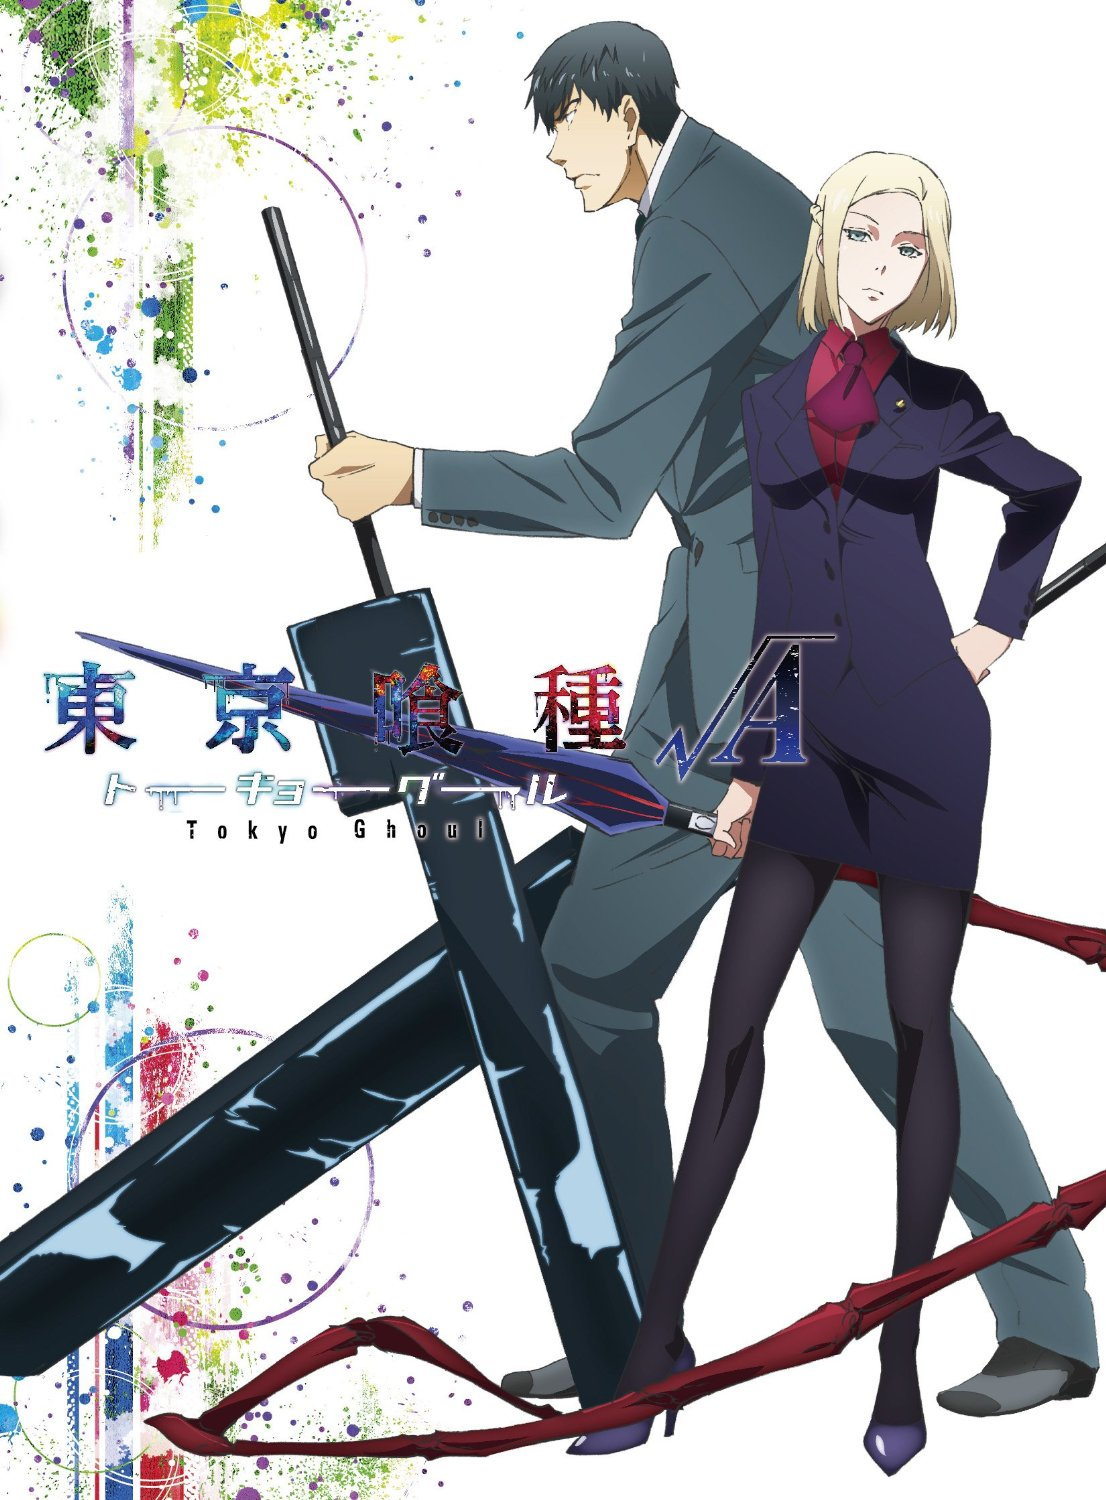 Tokyo Ghoul Root A Ep 4 Discussion